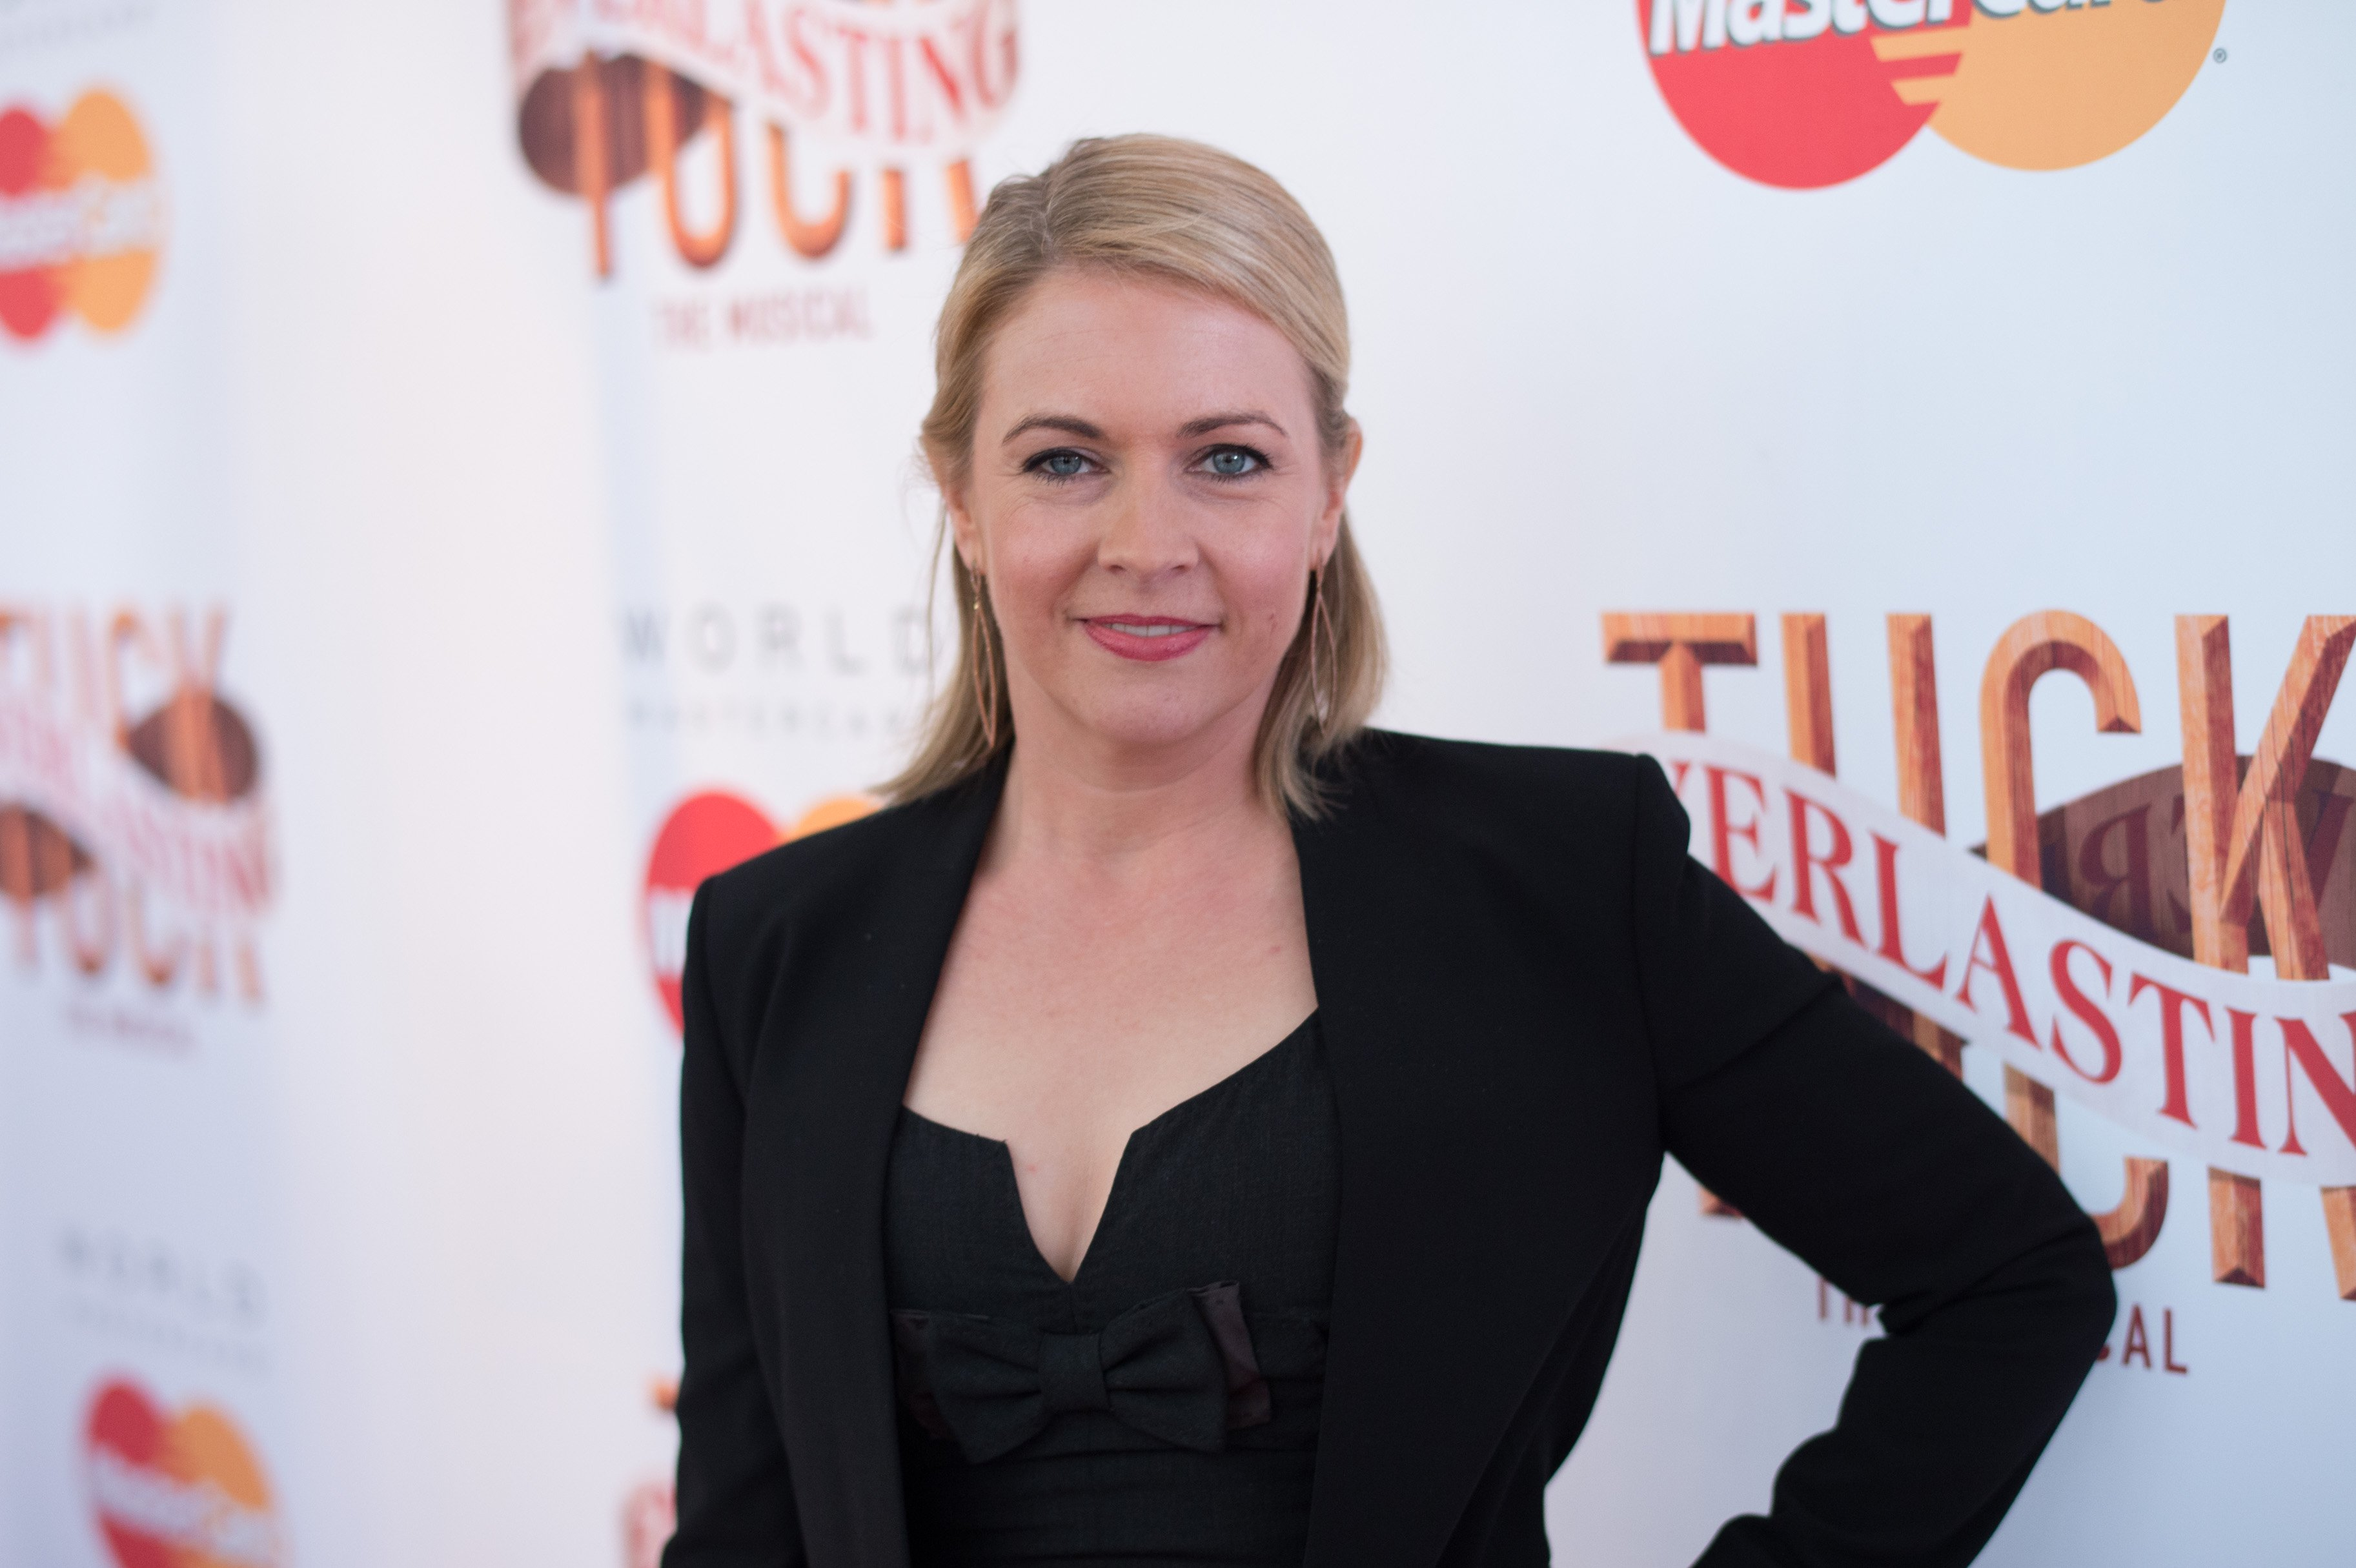 Melissa Joan Hart am Broadhurst Theatre am 26. April 2016 in New York City | Quelle: Getty Images